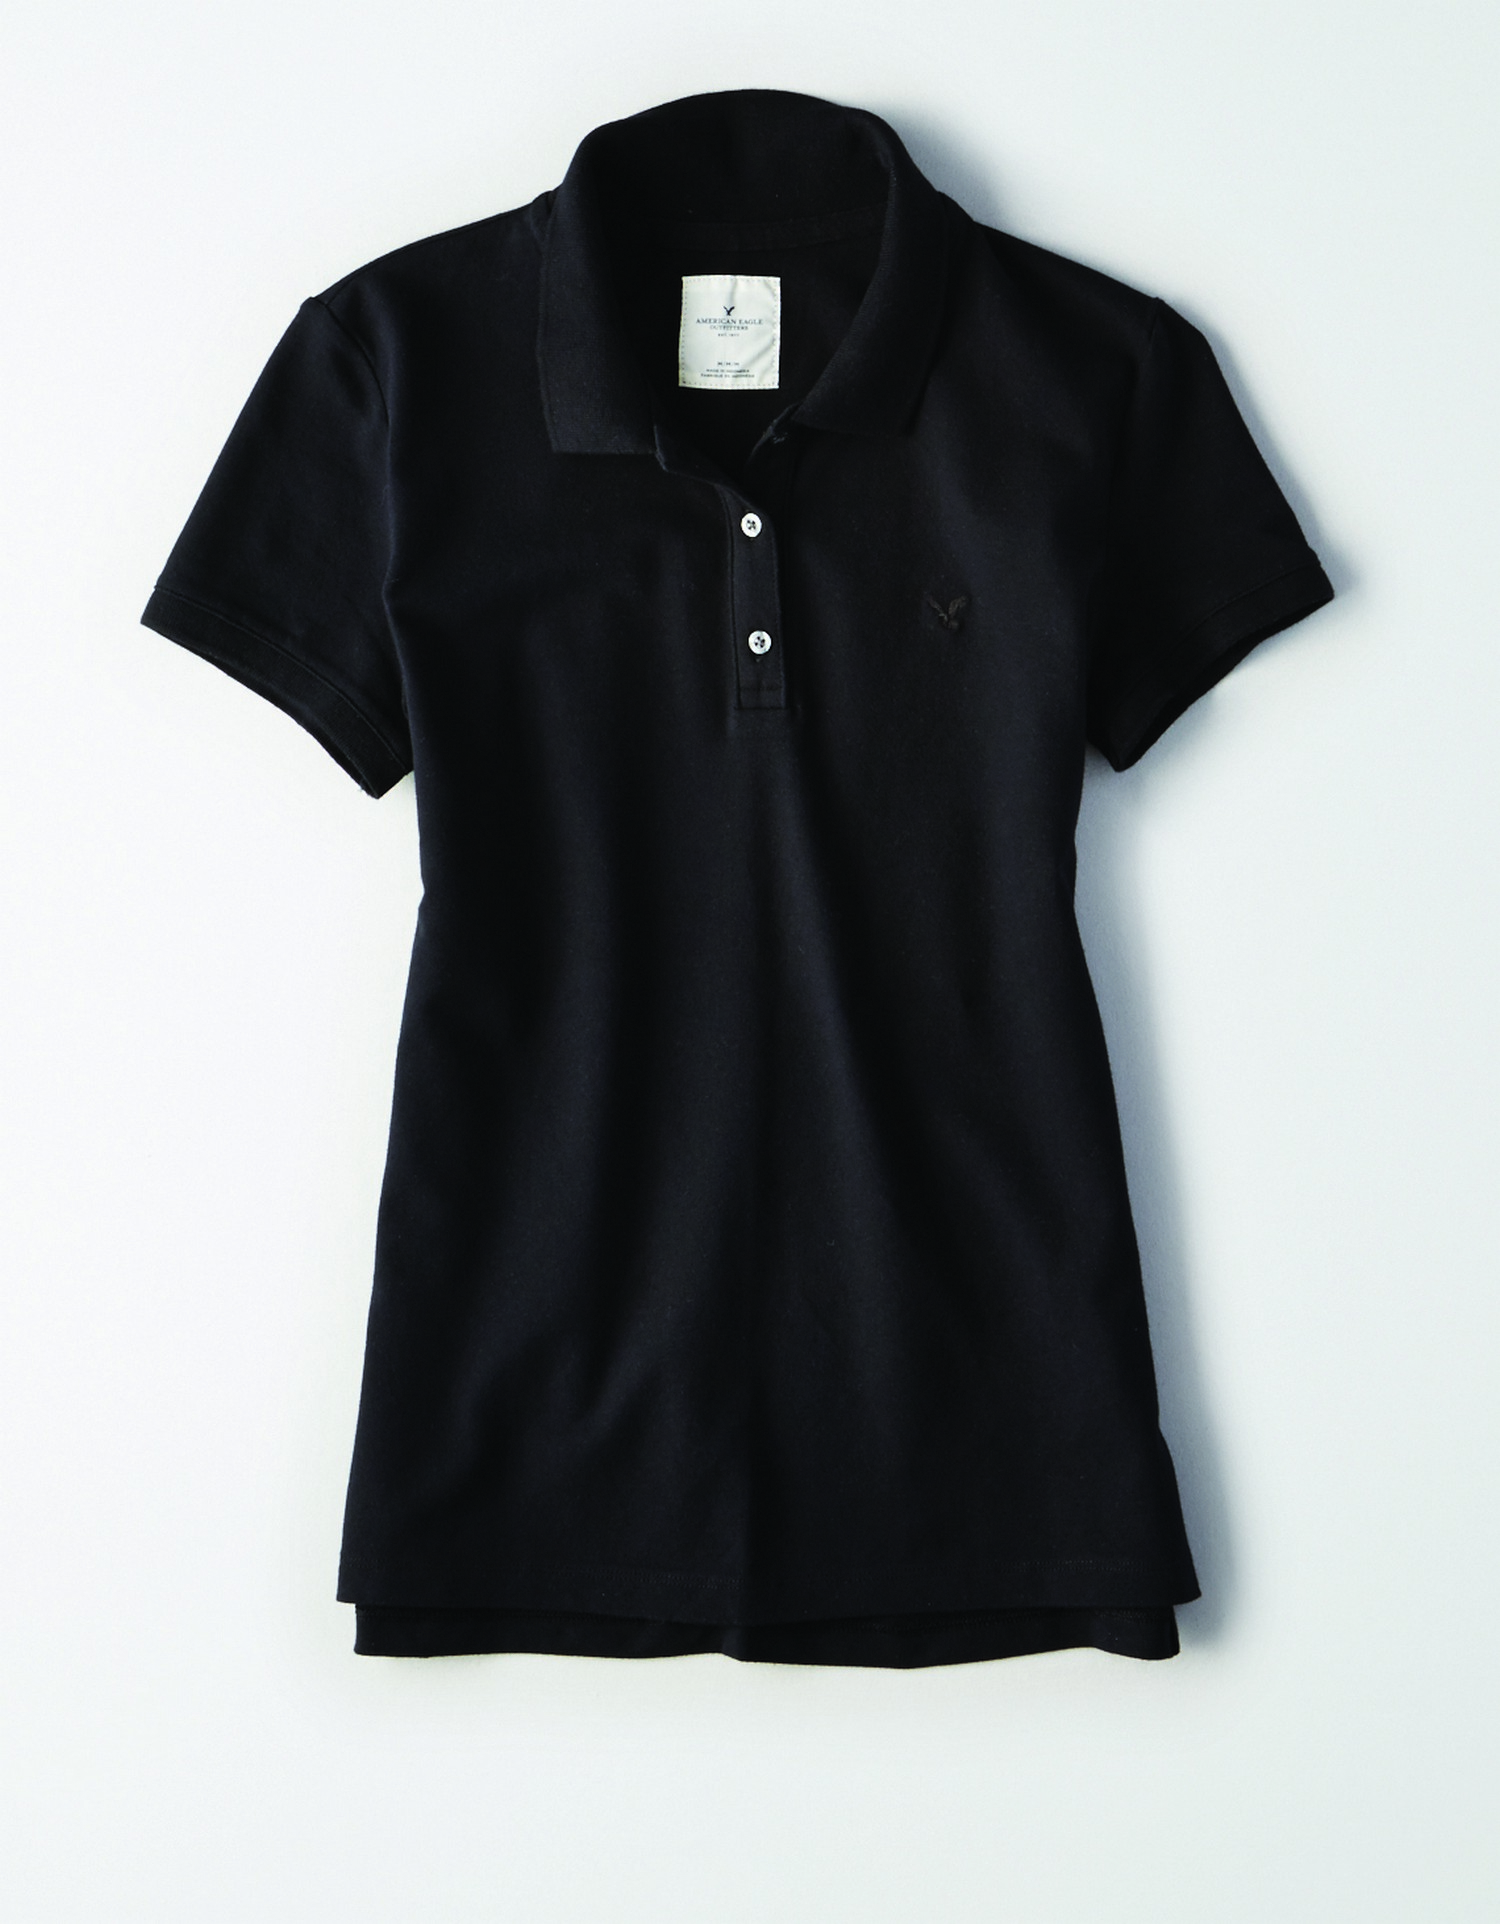 AE - INTL - Apparel - W - Polo - Black - Solid Color - Black Embroidered eagle on left chest JP